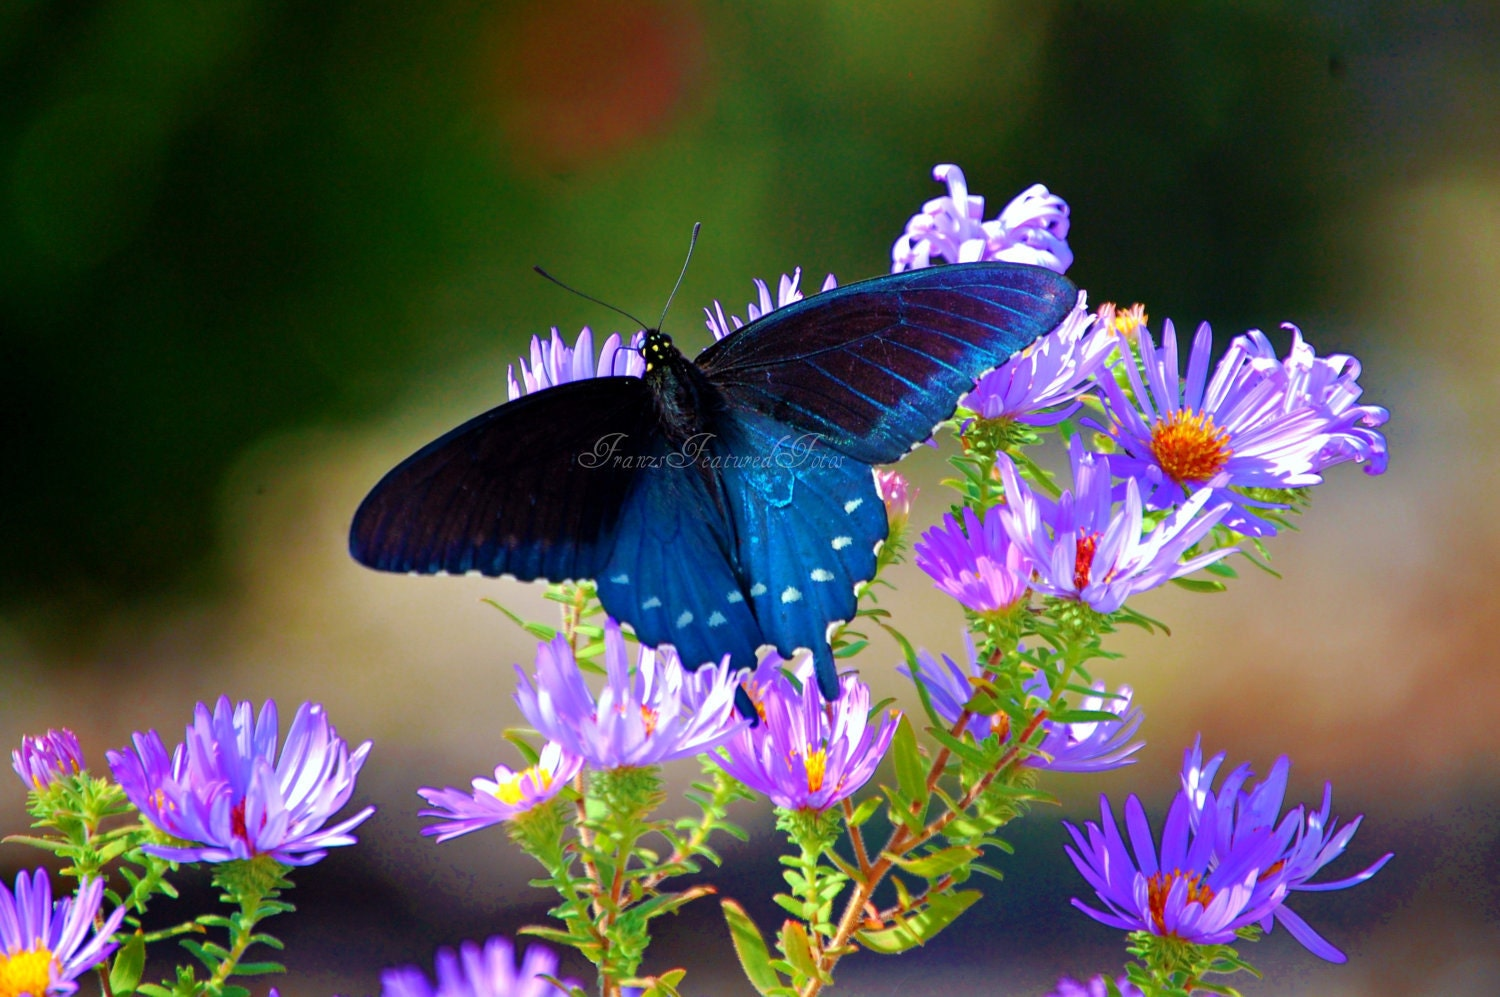 Butterfly Nature Macro Photography 8x10  Home Deco Print- Flower Photography-Landscape -Pinks-Purples-Black-Blue - FranzsFeaturedFotos